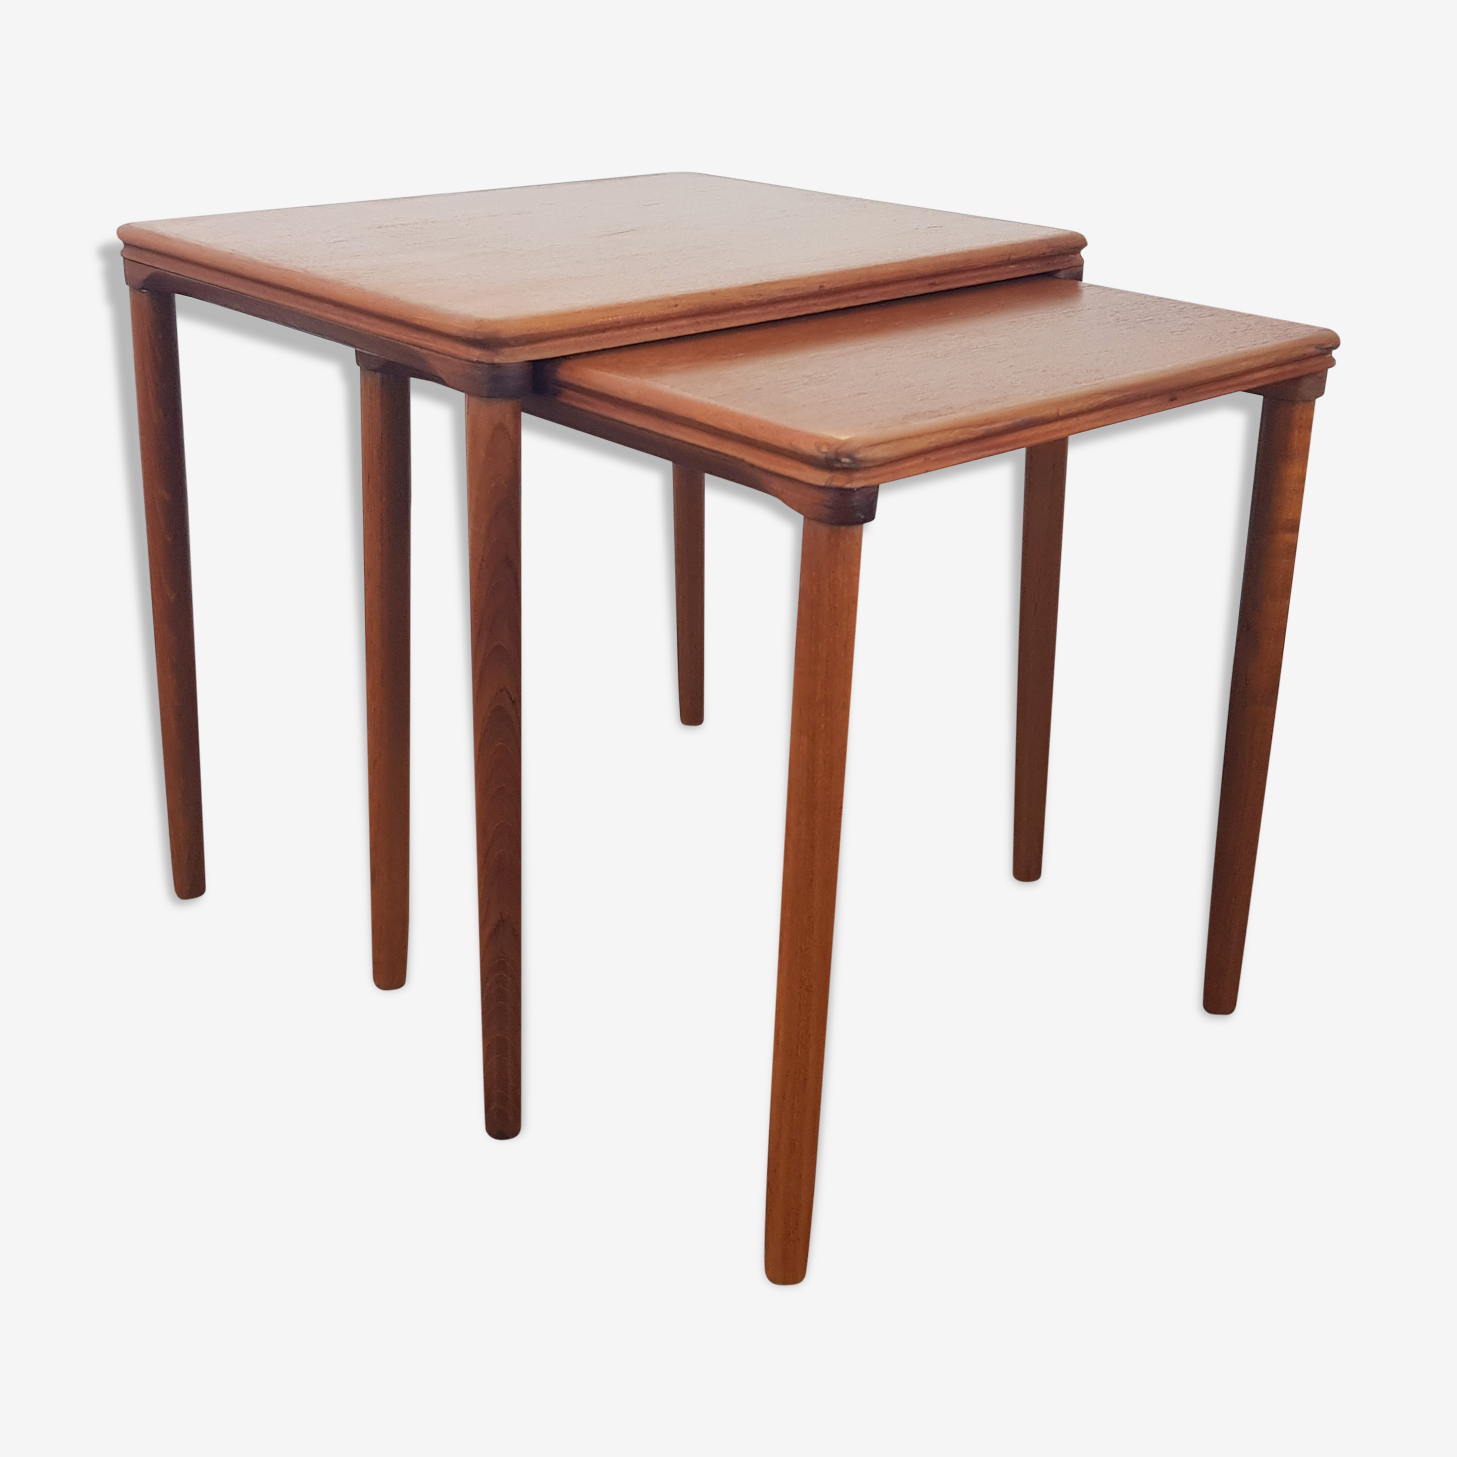 2 pull out tables by E W Bach for Mobelfabrikken Toften, 1960